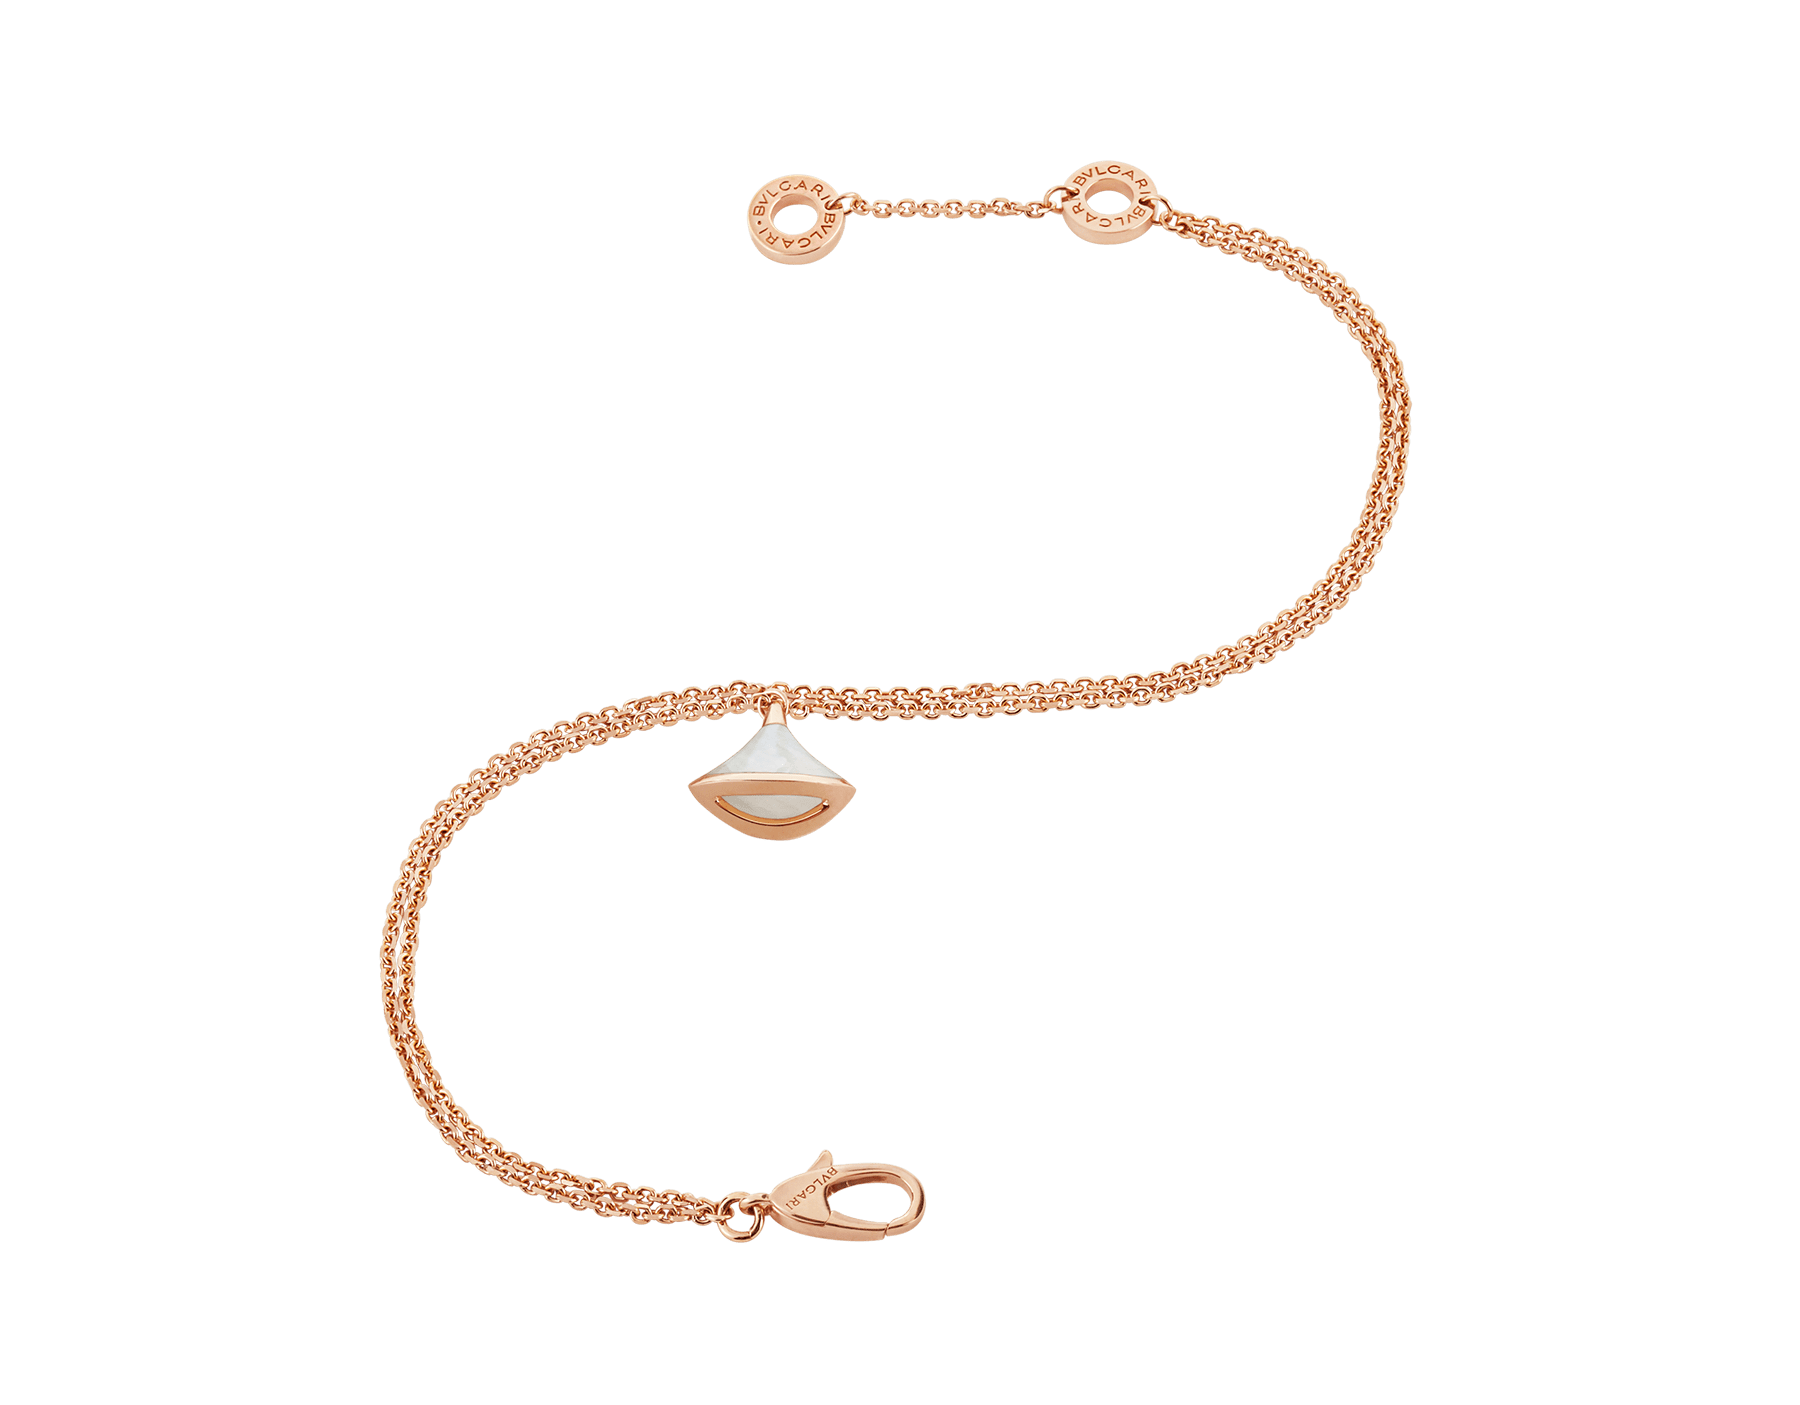 DIVAS' DREAM bracelet in 18 kt rose gold, with 18 kt rose gold pendant set with mother-of-pearl. BR857196 image 2